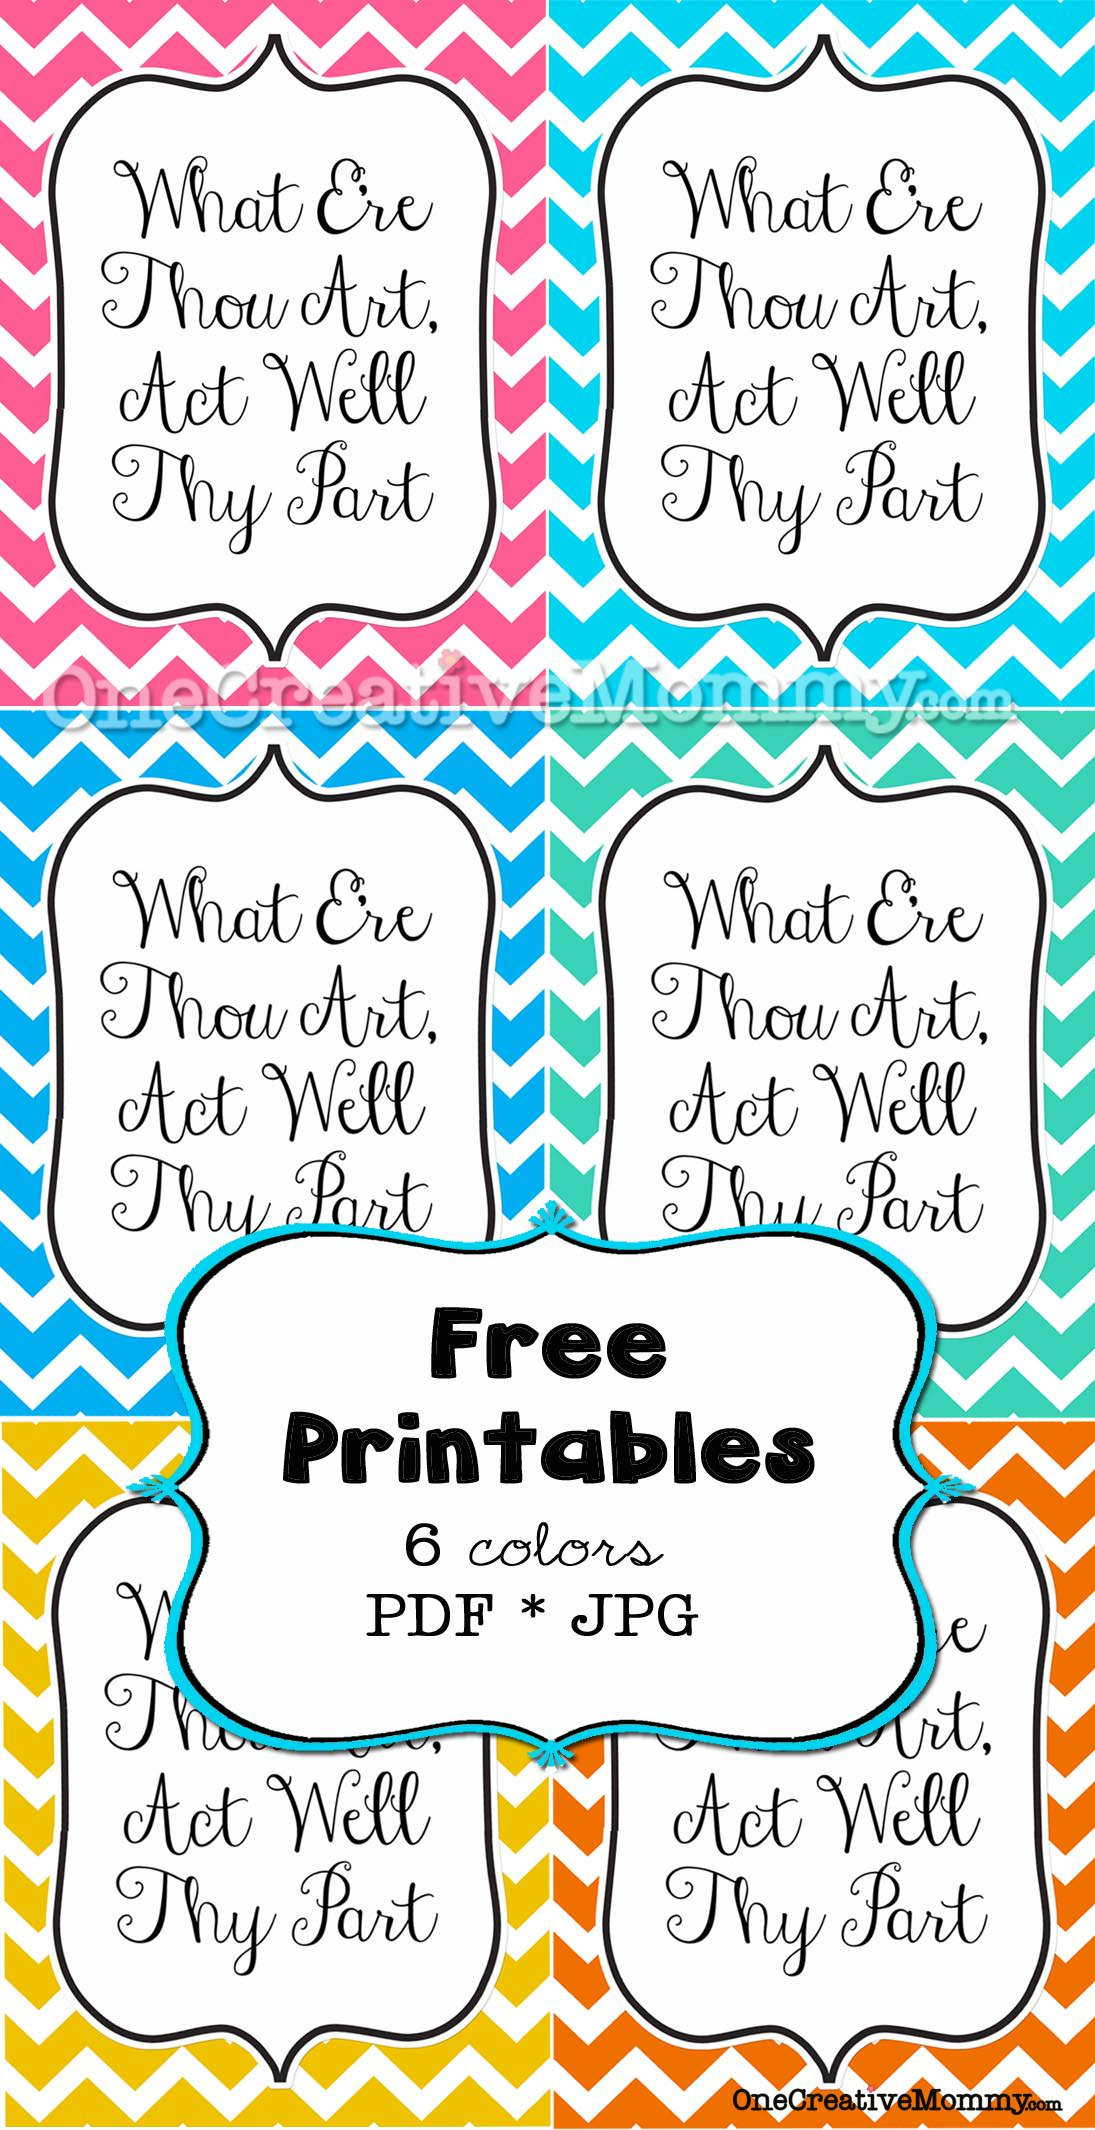 What E're Thou Art, Act Well Thy Part Free Printable {Choose from 6 Vibrant Colors}